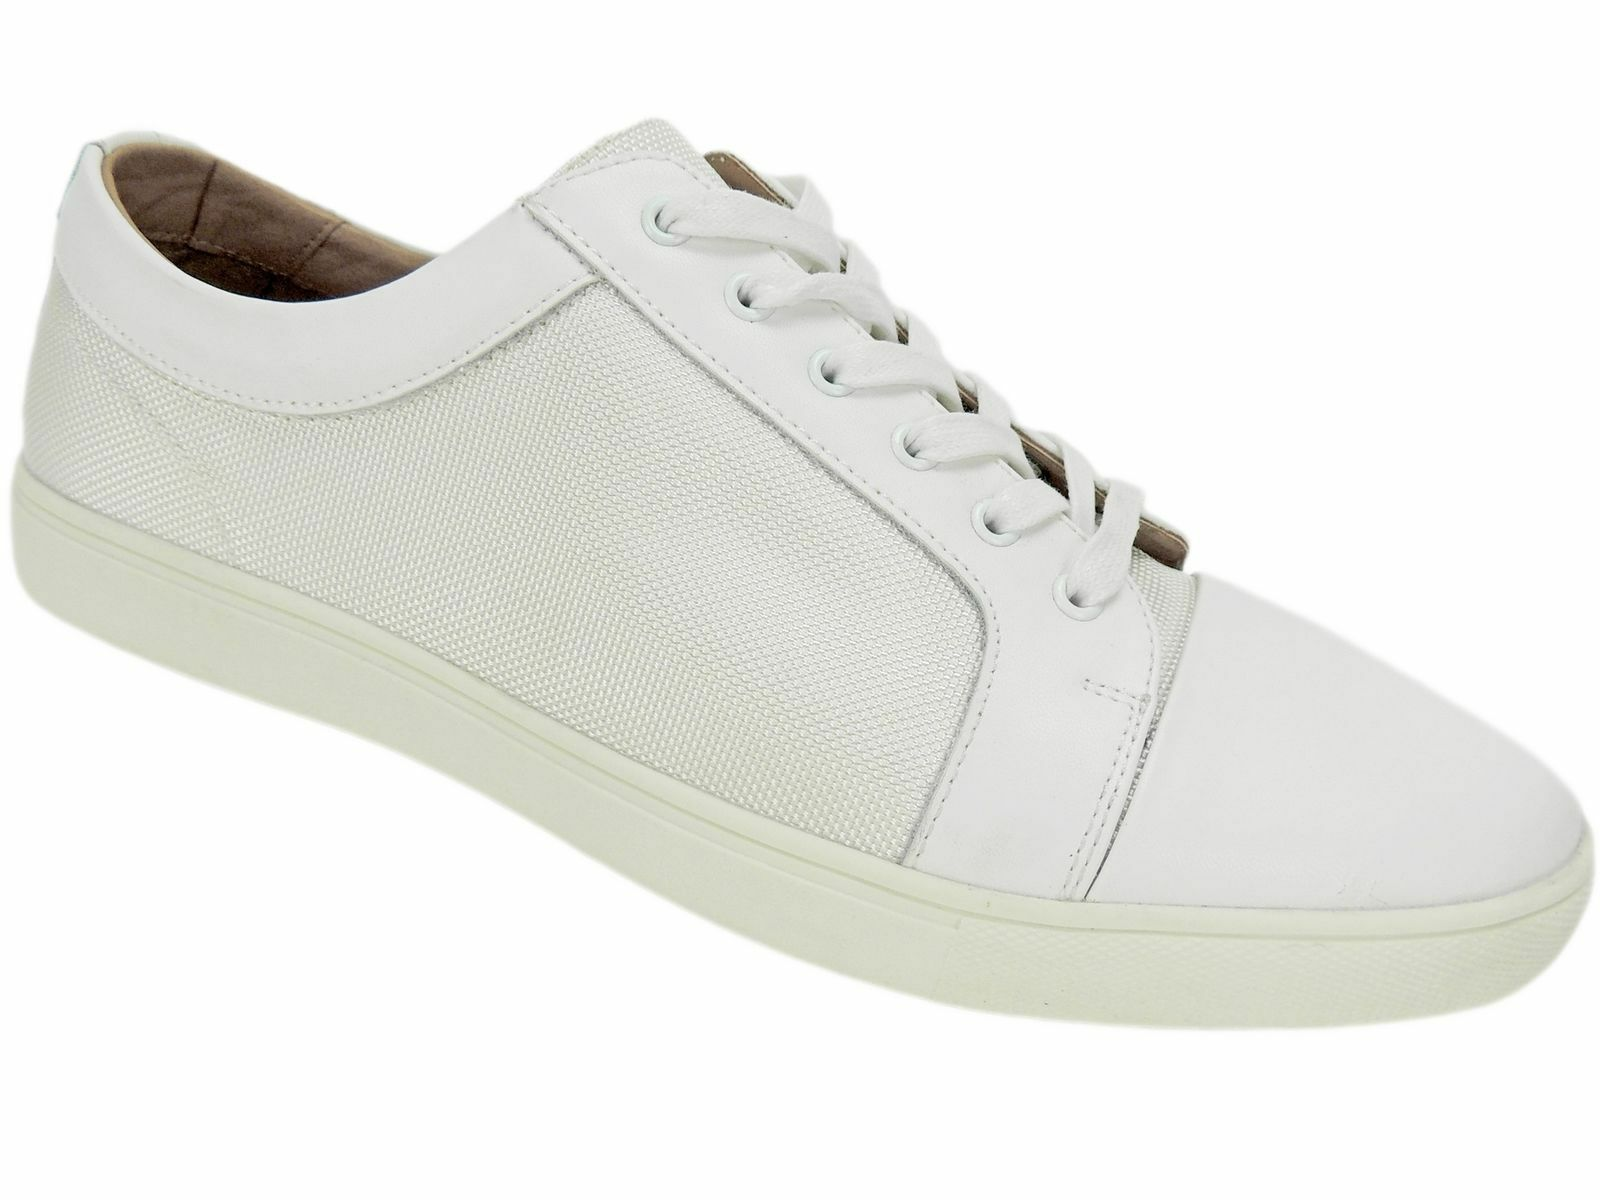 free shipping d723c 1f2ae Bar III Men s Men s Men s White Adrian Low Top Athletic Sneakers Size 10.5  M 1d57bc